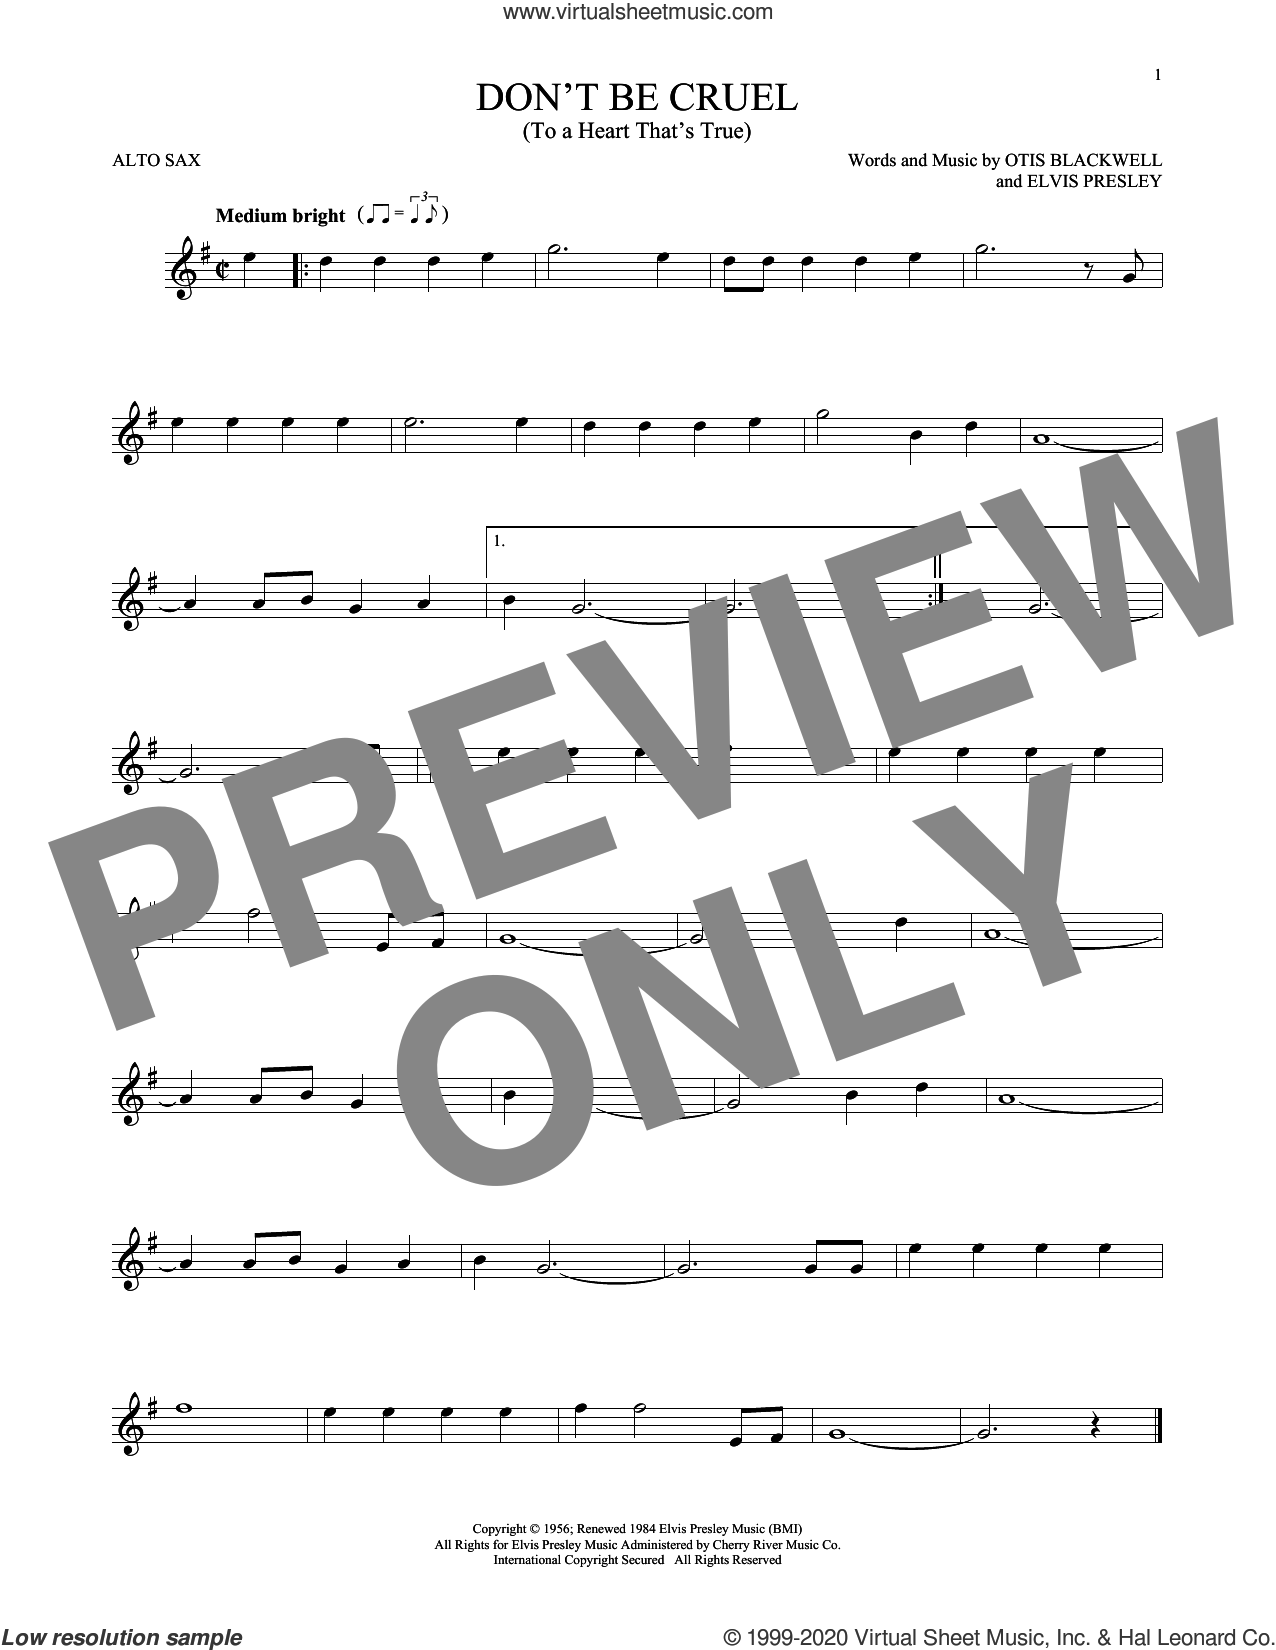 Don't Be Cruel (To A Heart That's True) sheet music for alto saxophone solo by Elvis Presley and Otis Blackwell, intermediate skill level